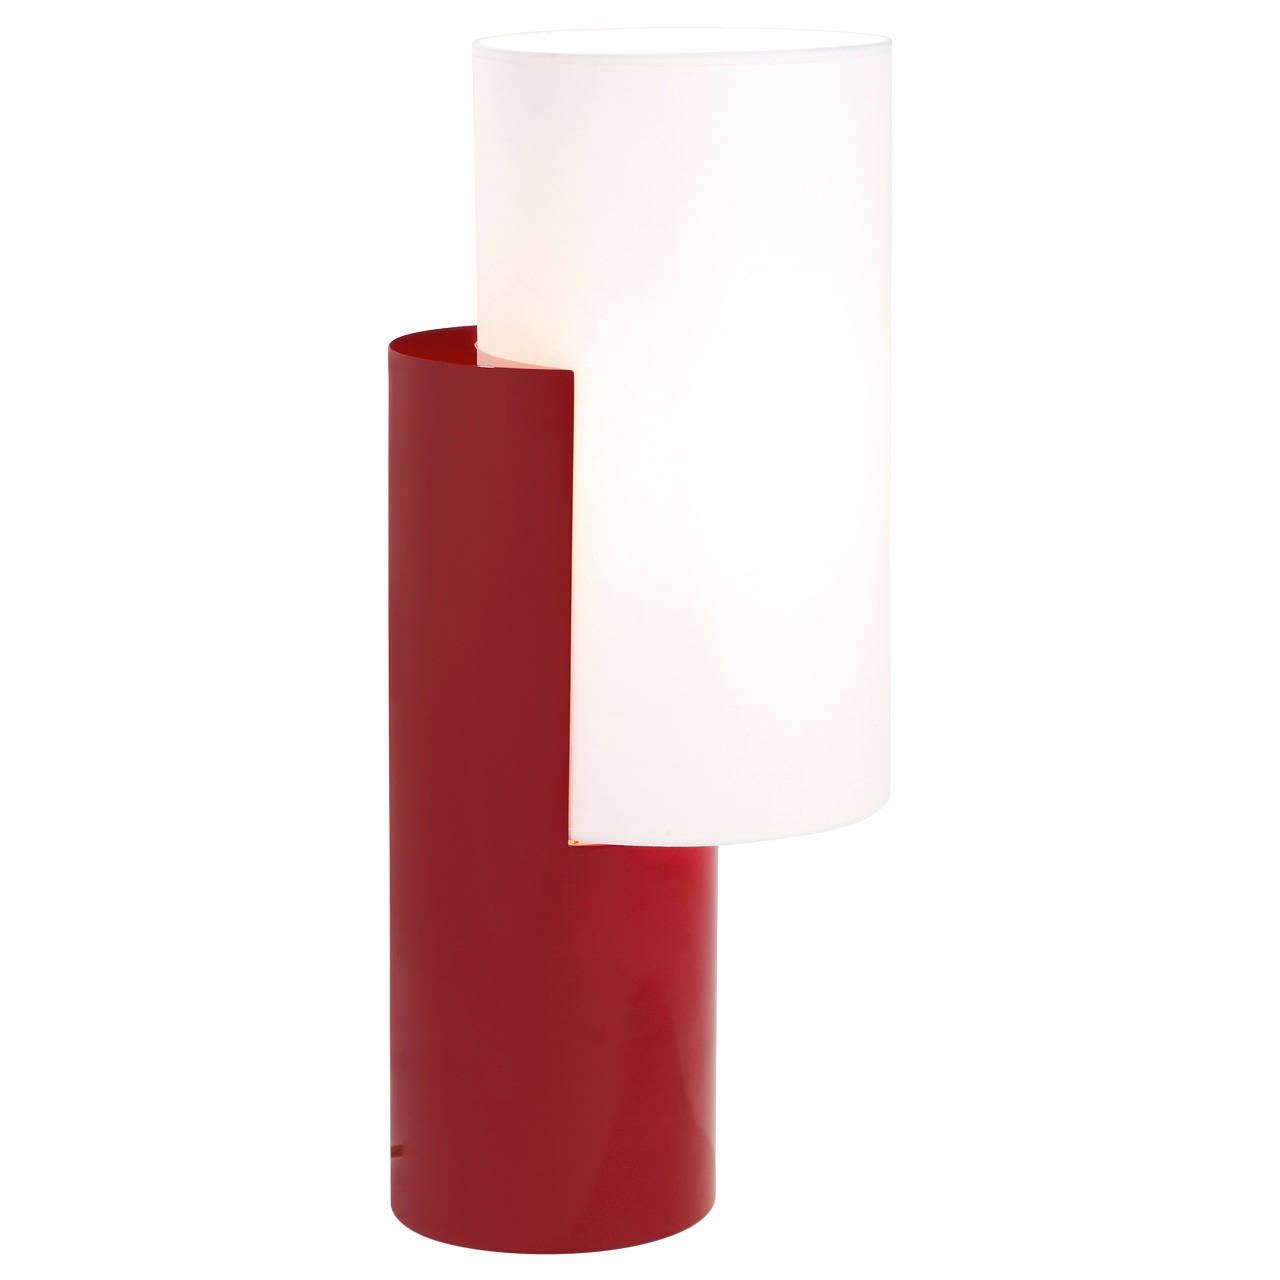 """Lamp """"Complice"""" by Hervé Langlais for Galerie Negropontes"""